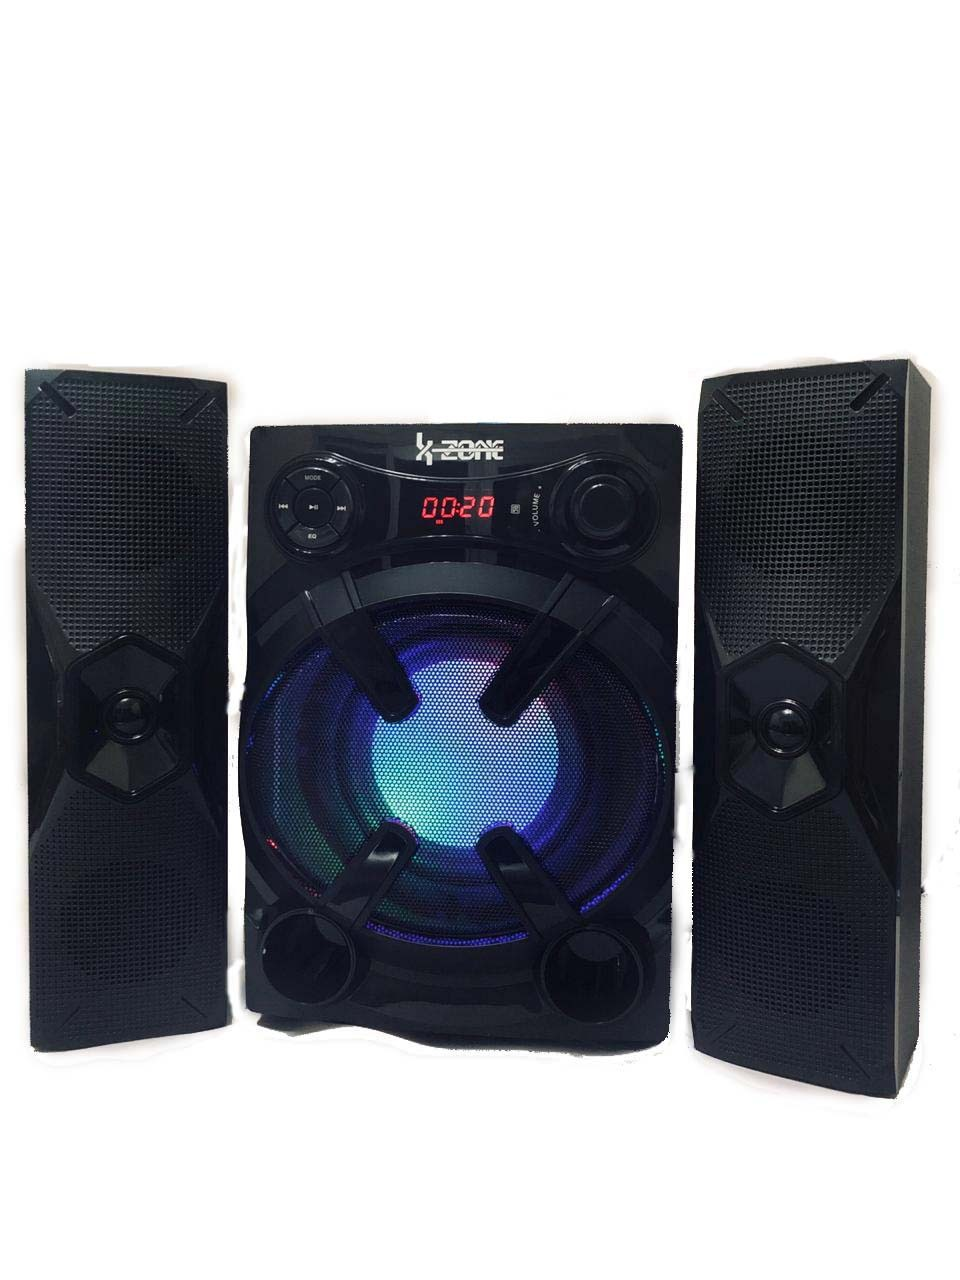 مسرح منزلى Home Theater SMT-3012